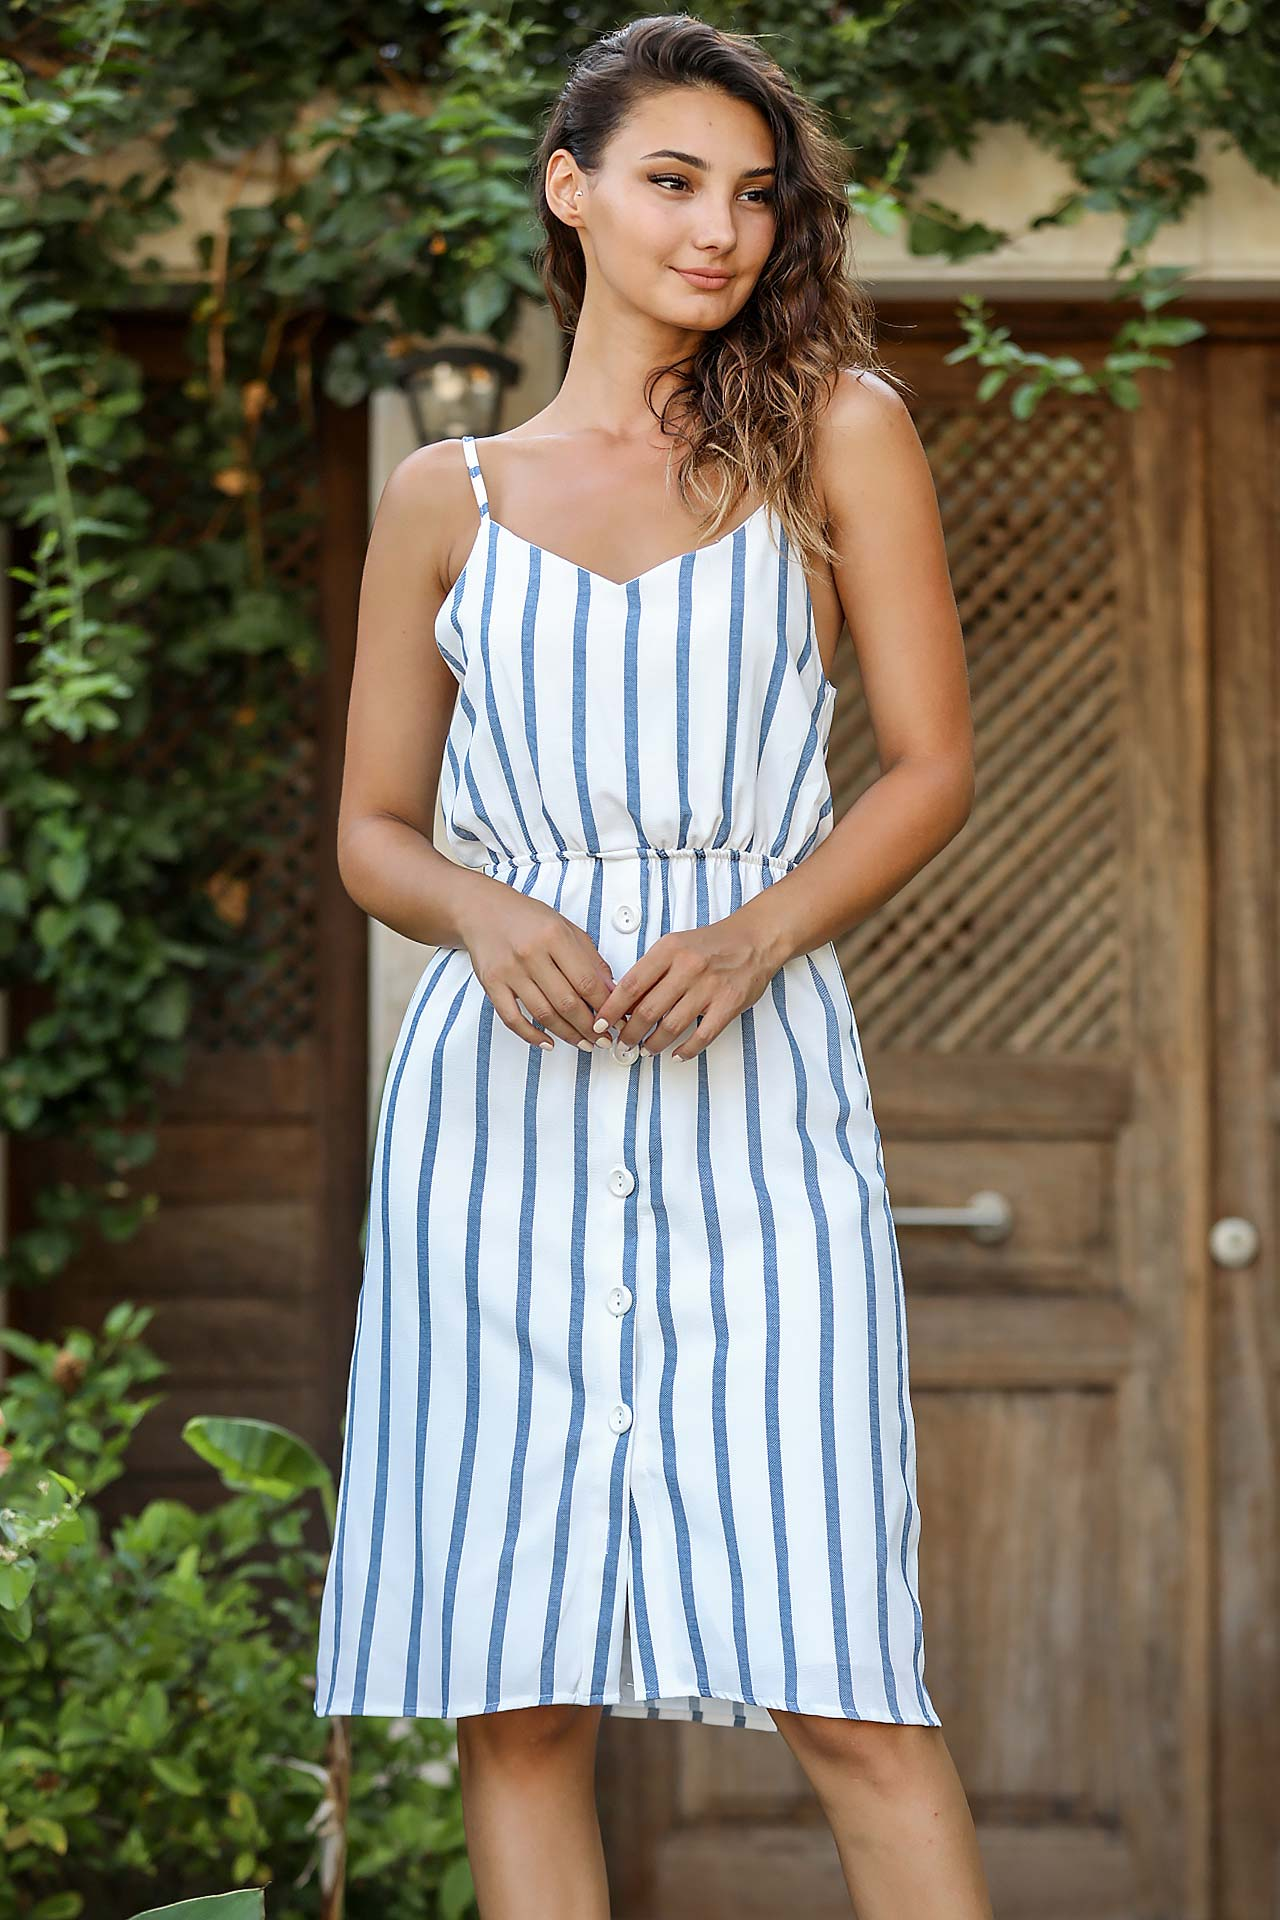 Thin Strappy Patterned Dress